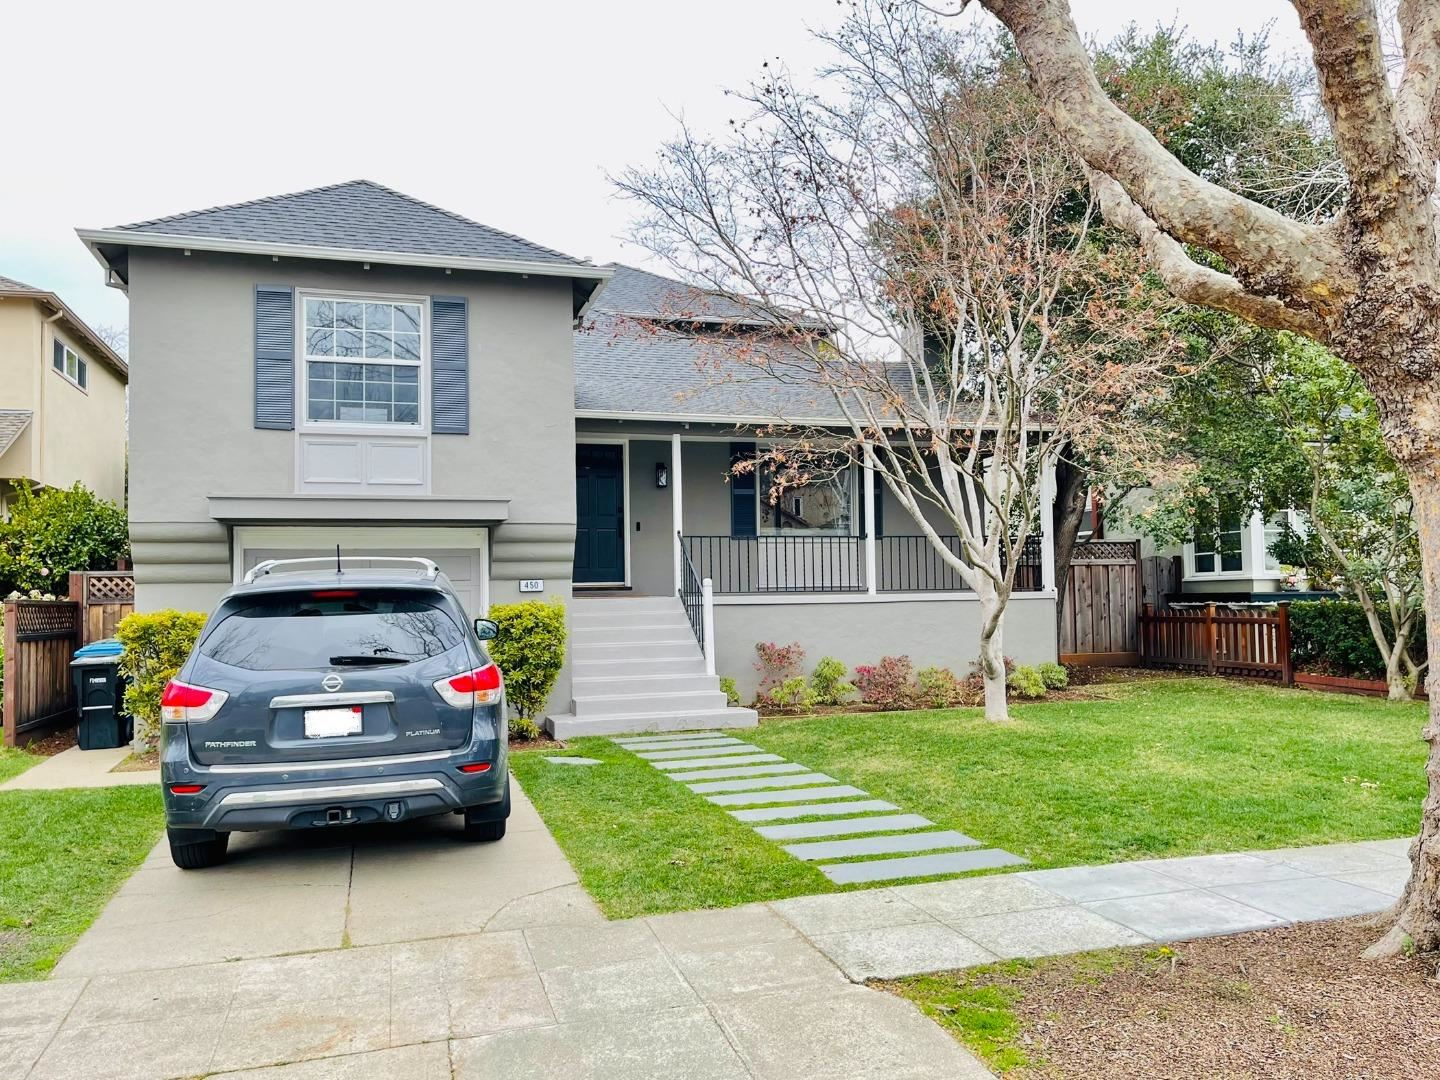 Photo for 450 Marin DR, BURLINGAME, CA 94010 (MLS # ML81829194)